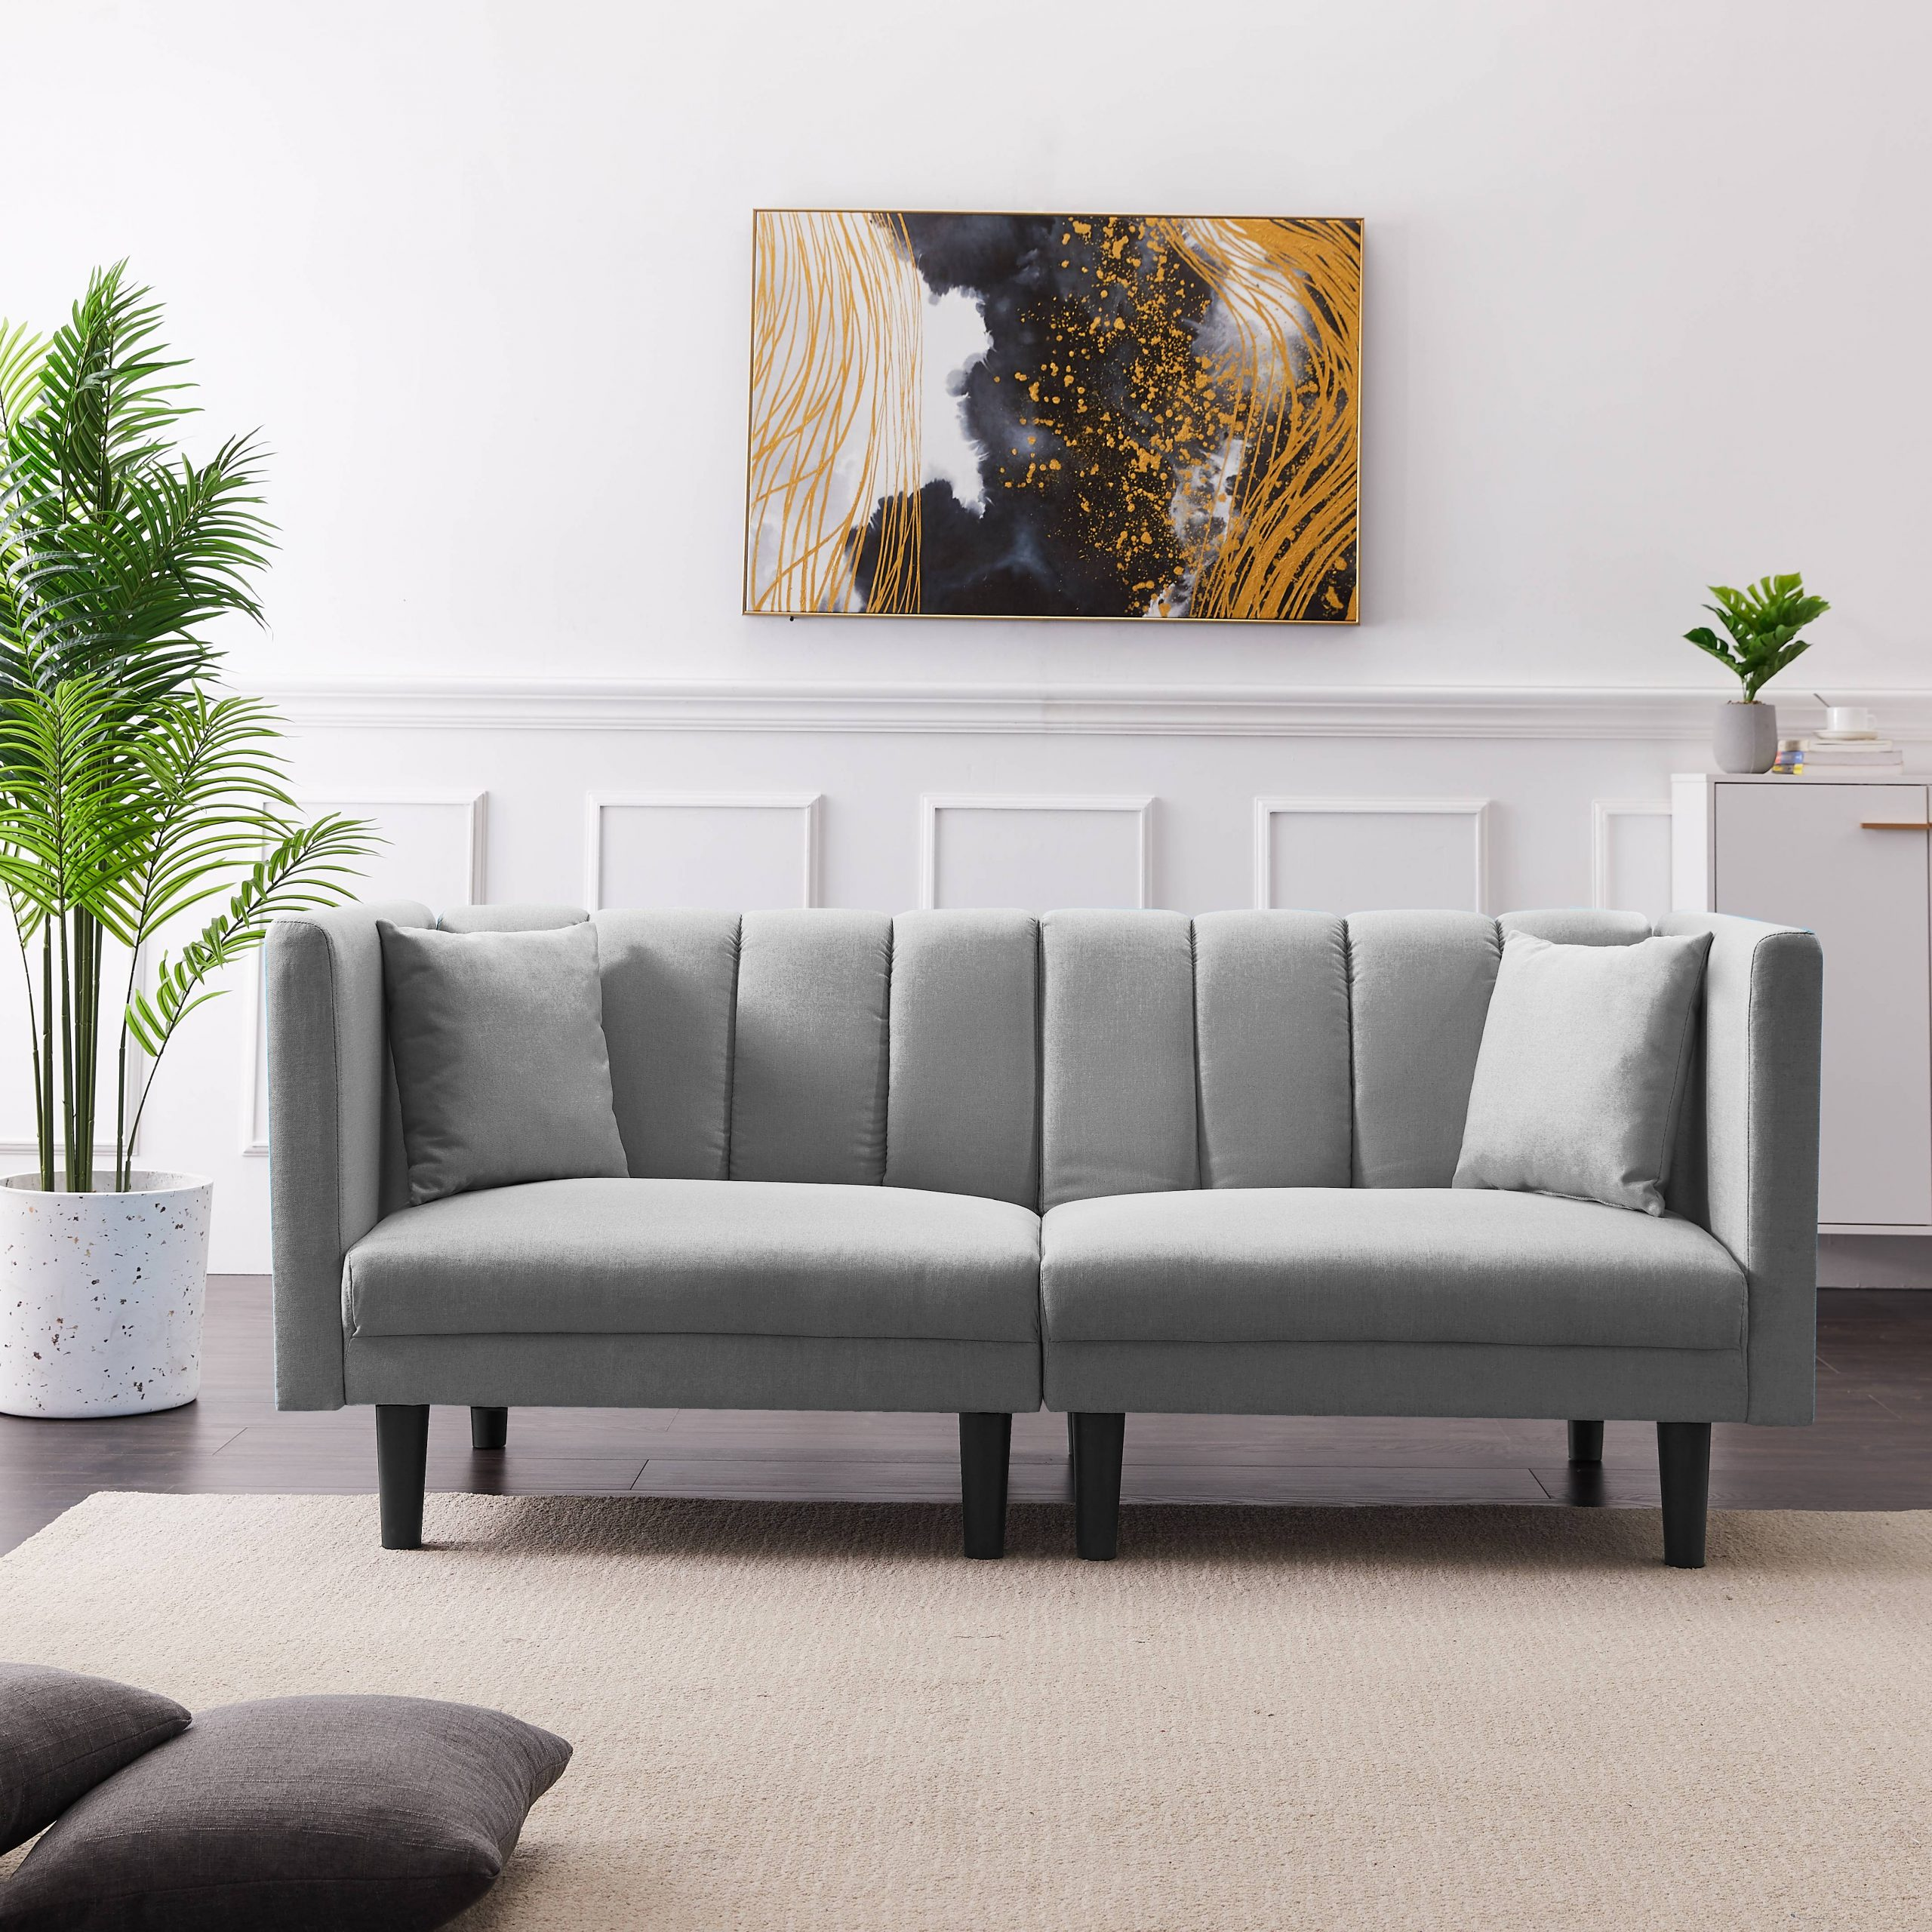 Fabric Futon Sofa Bed, Twin Sofa Sleeper Bed With Armrest For Convertible Sectional Sofas (View 7 of 15)